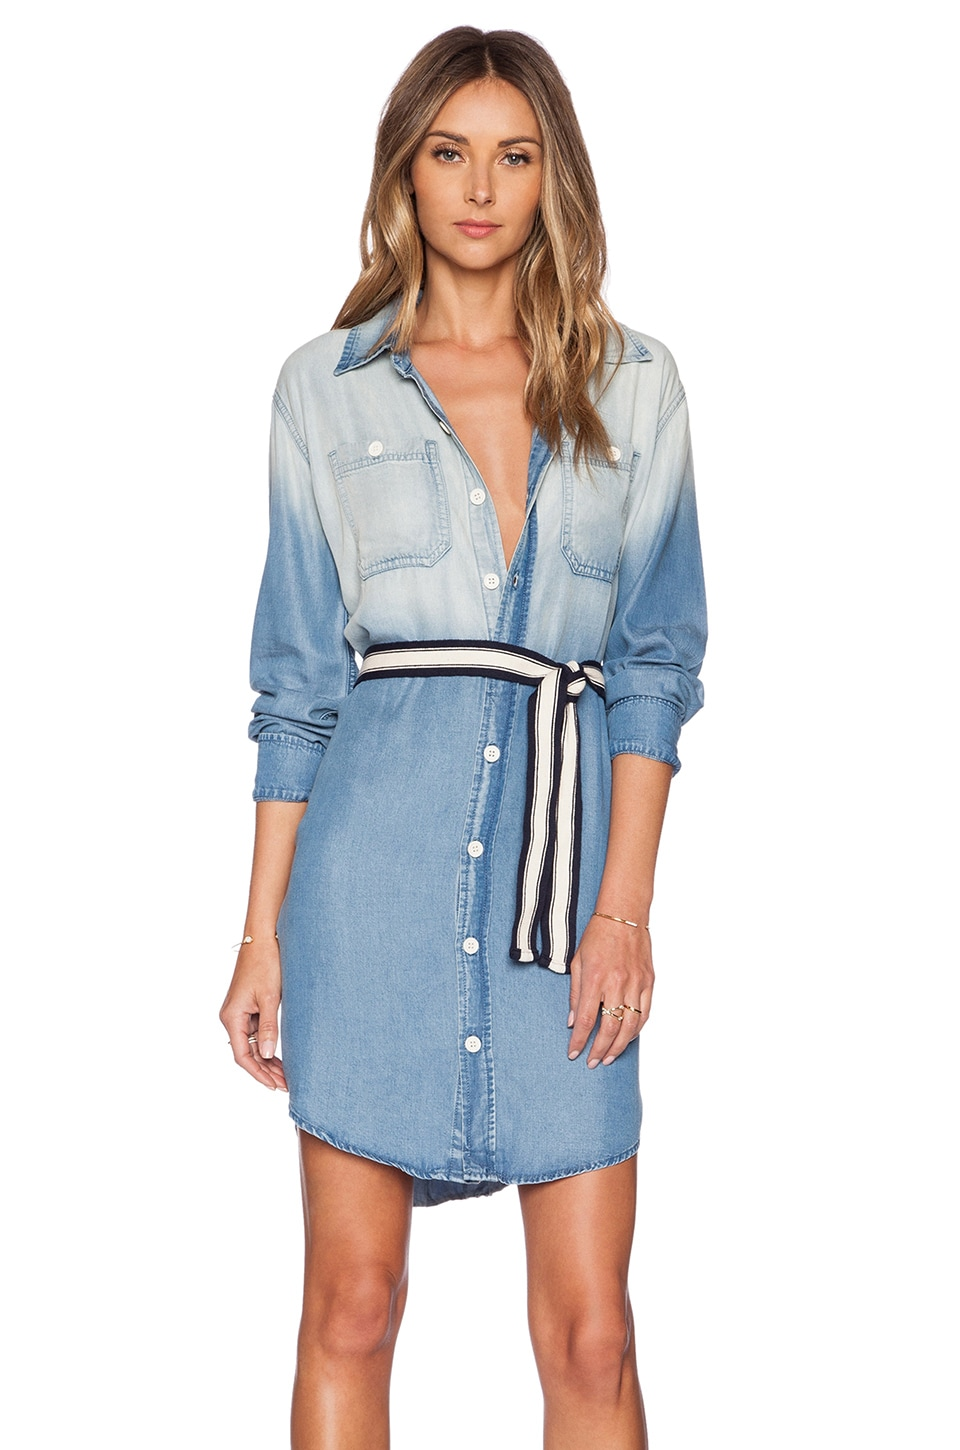 MONROW Chambray Shirt Dress in Denim Wash